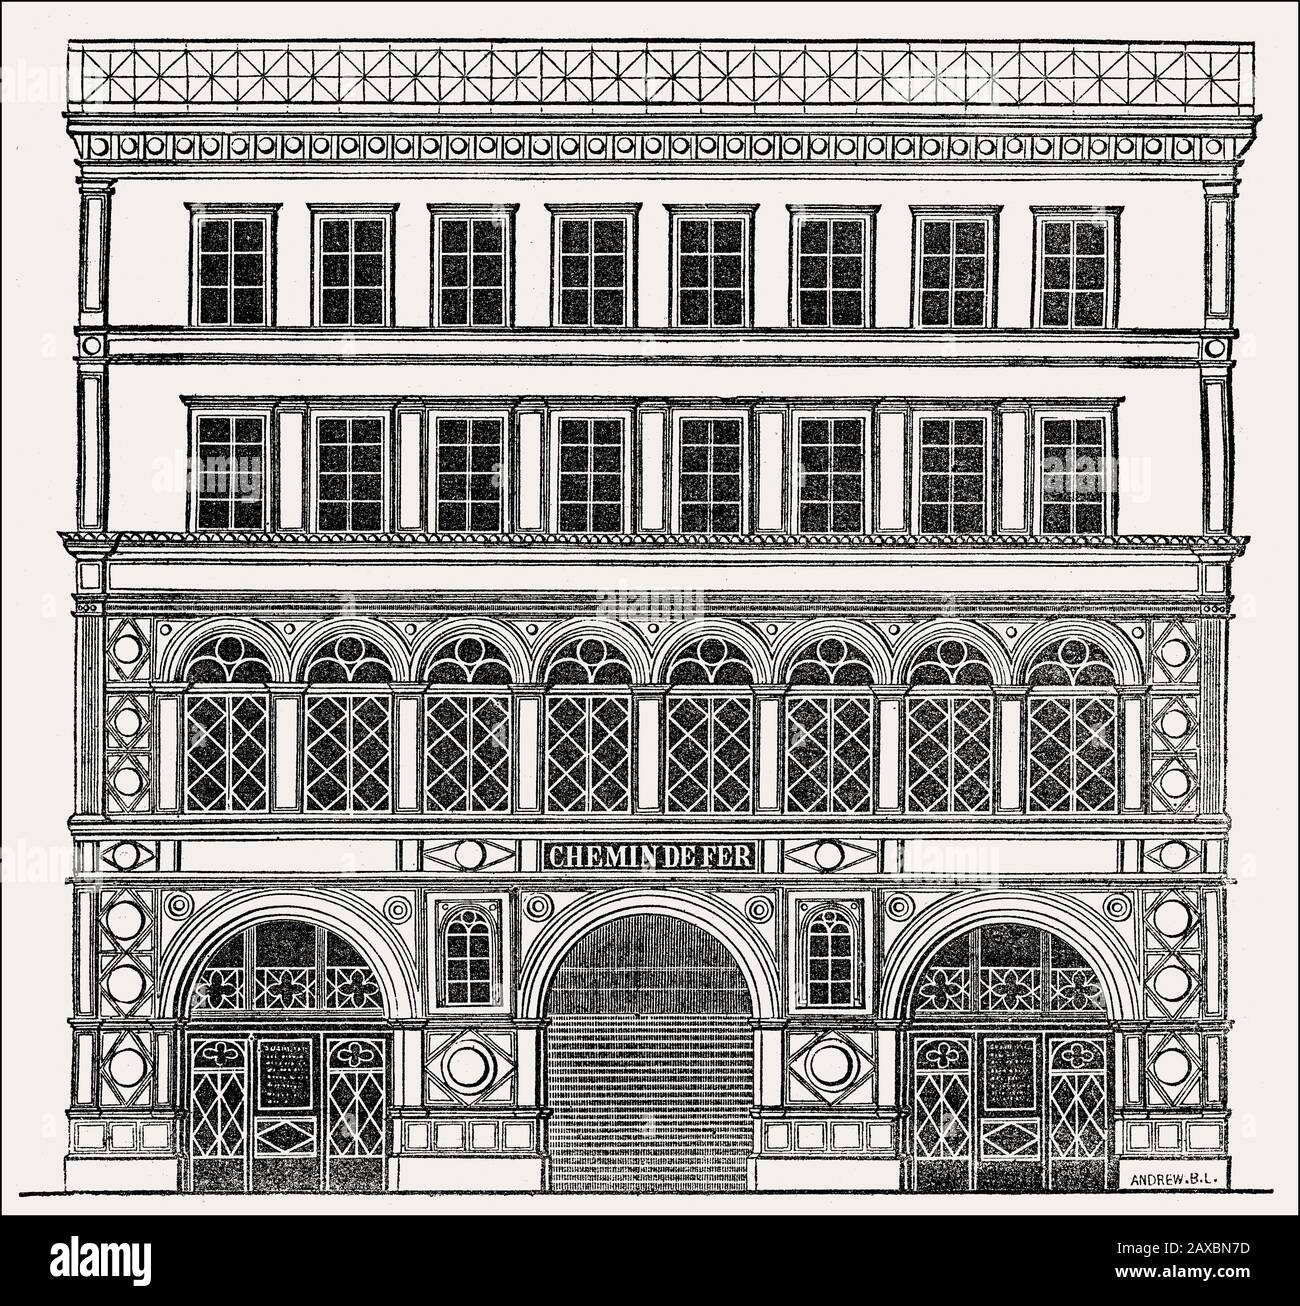 The planned facade of Madeleine station, Rue Tronchet, Paris, France, 1830s Stock Photo